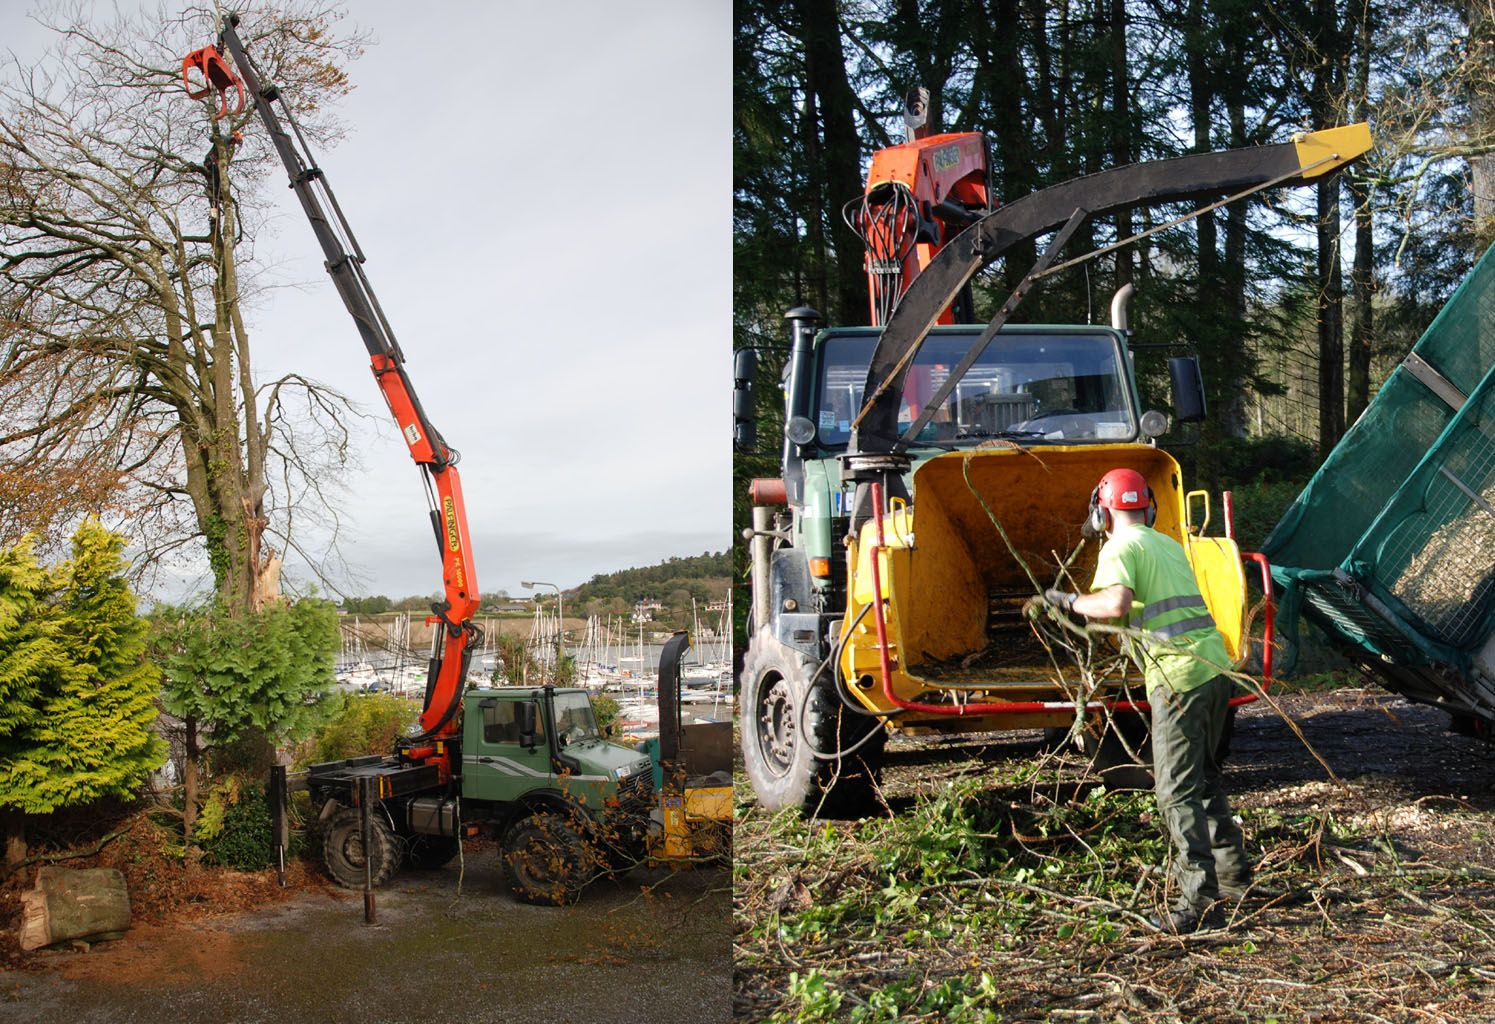 Lifting, Chipping, Towing...there's Nothing a Mog